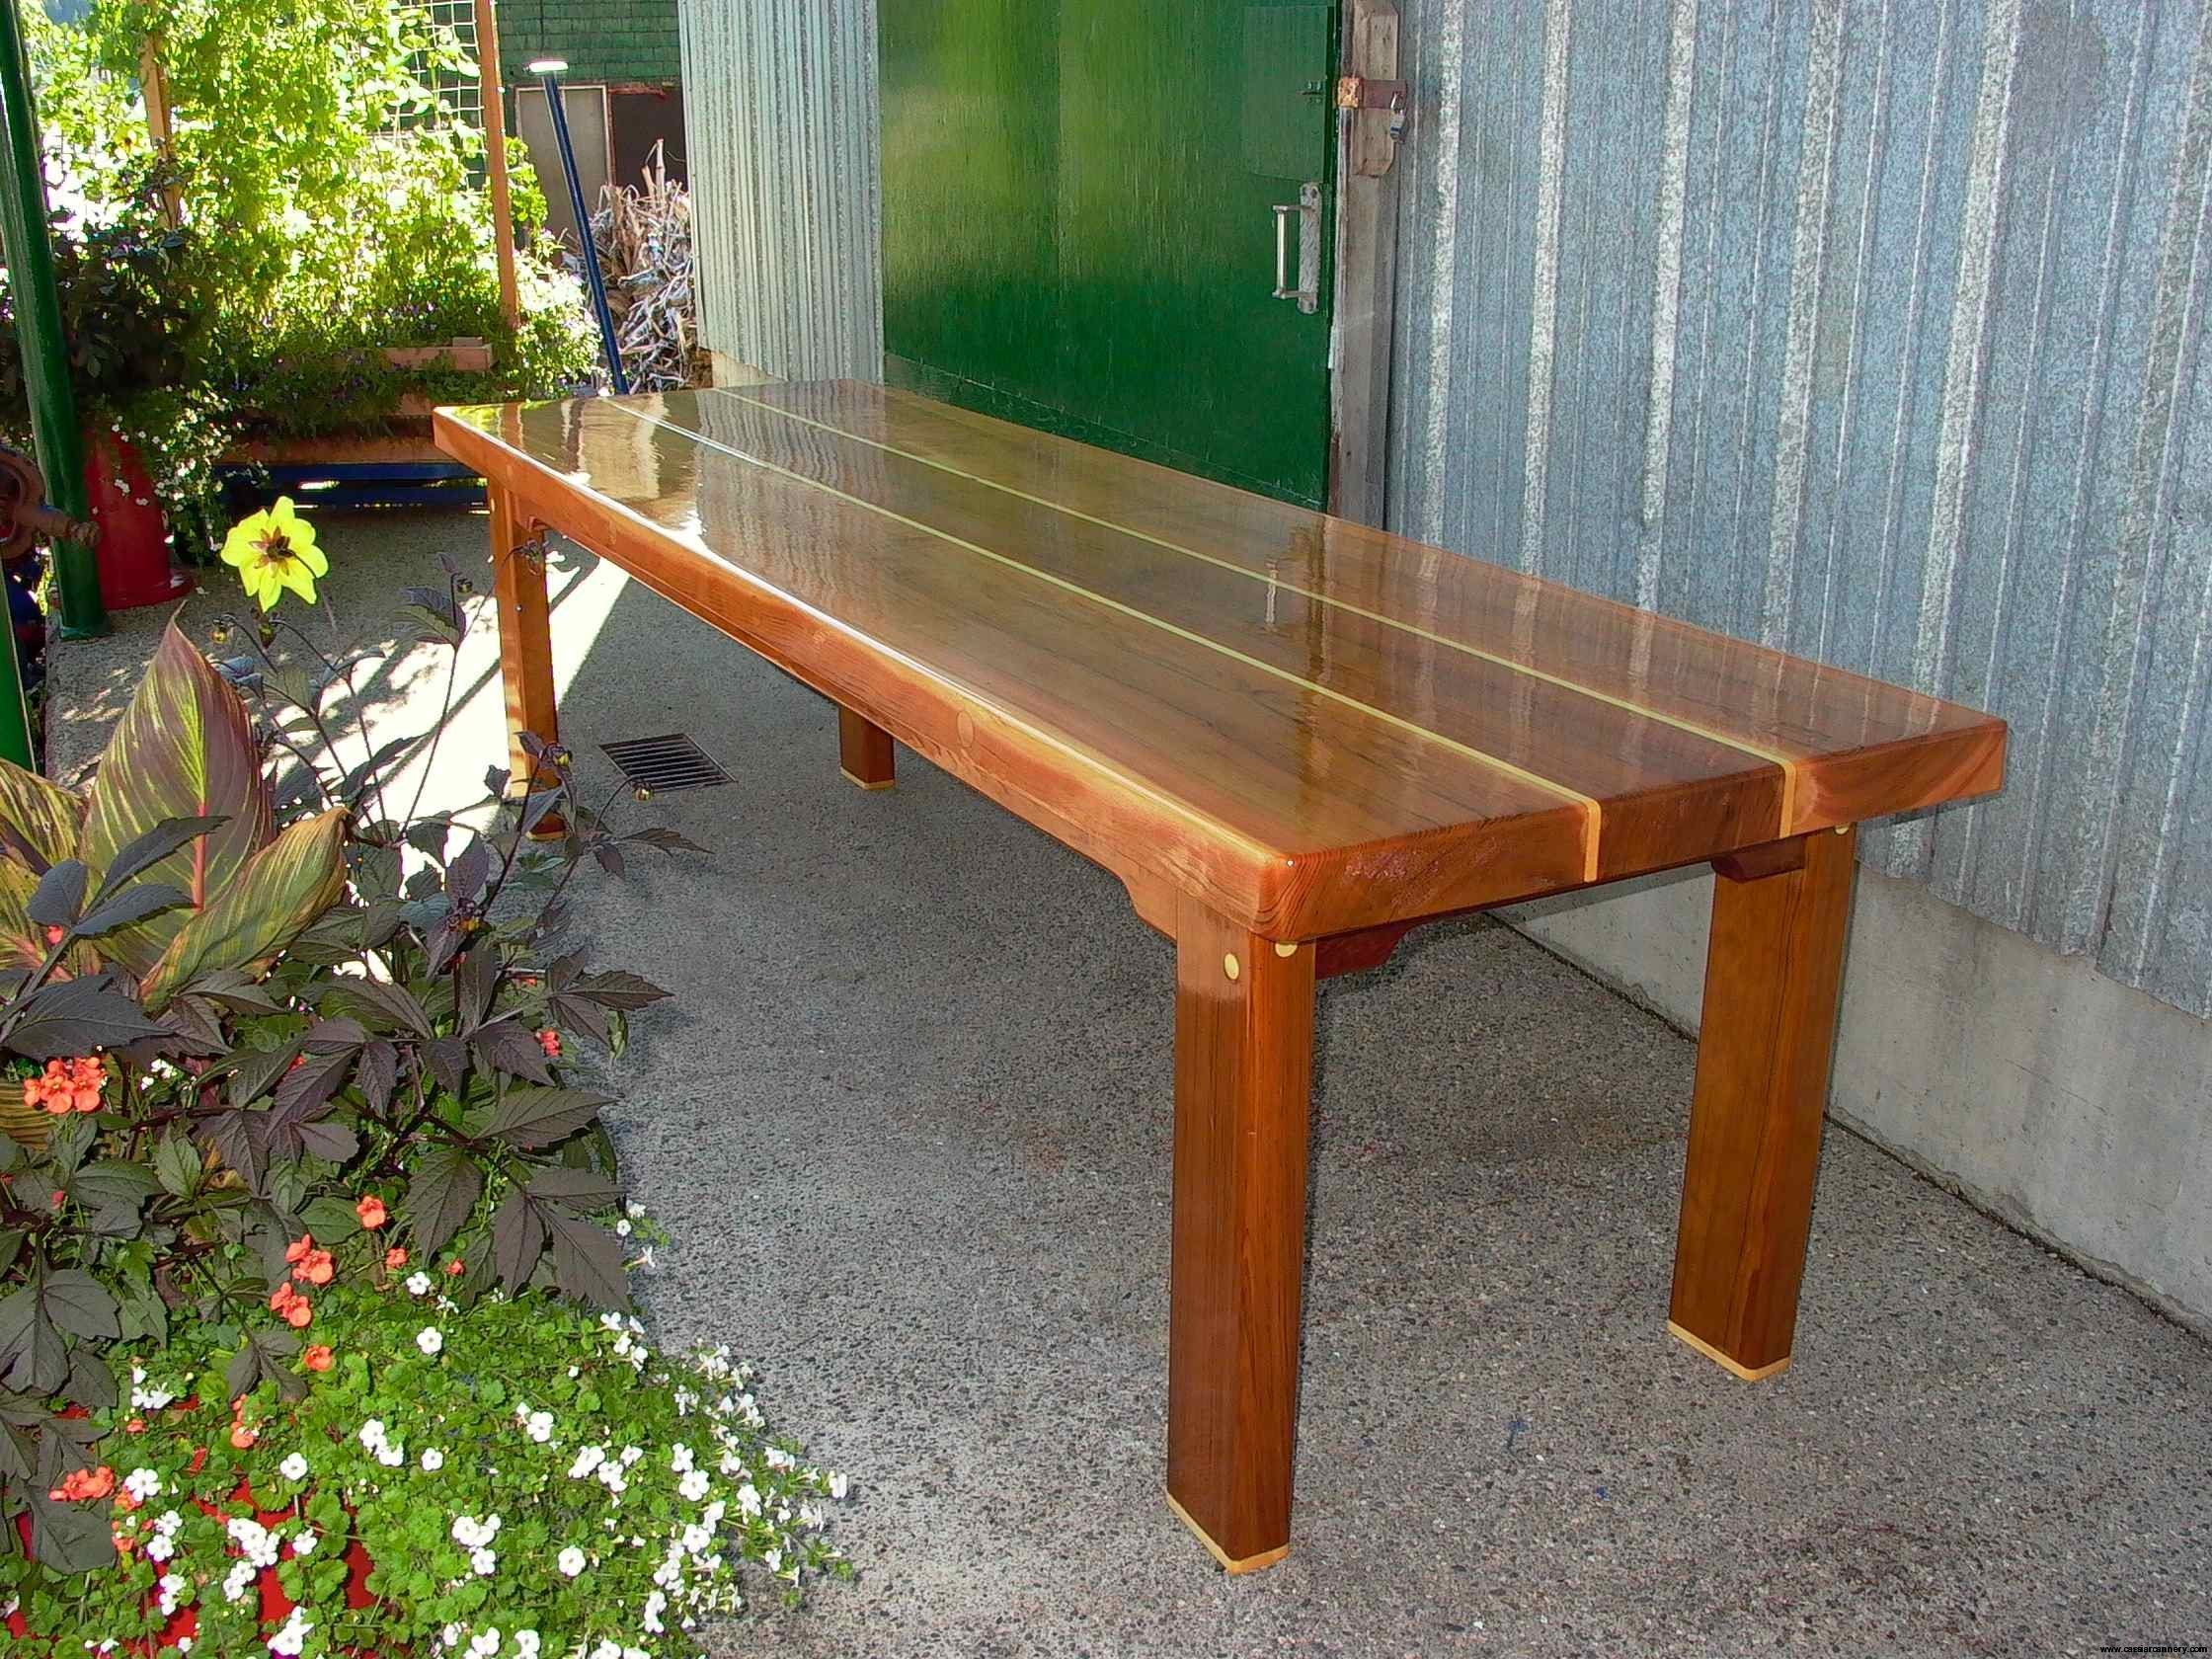 Cassiar Cannery: reclaimed red and yellow cedar table as a finished product for sale